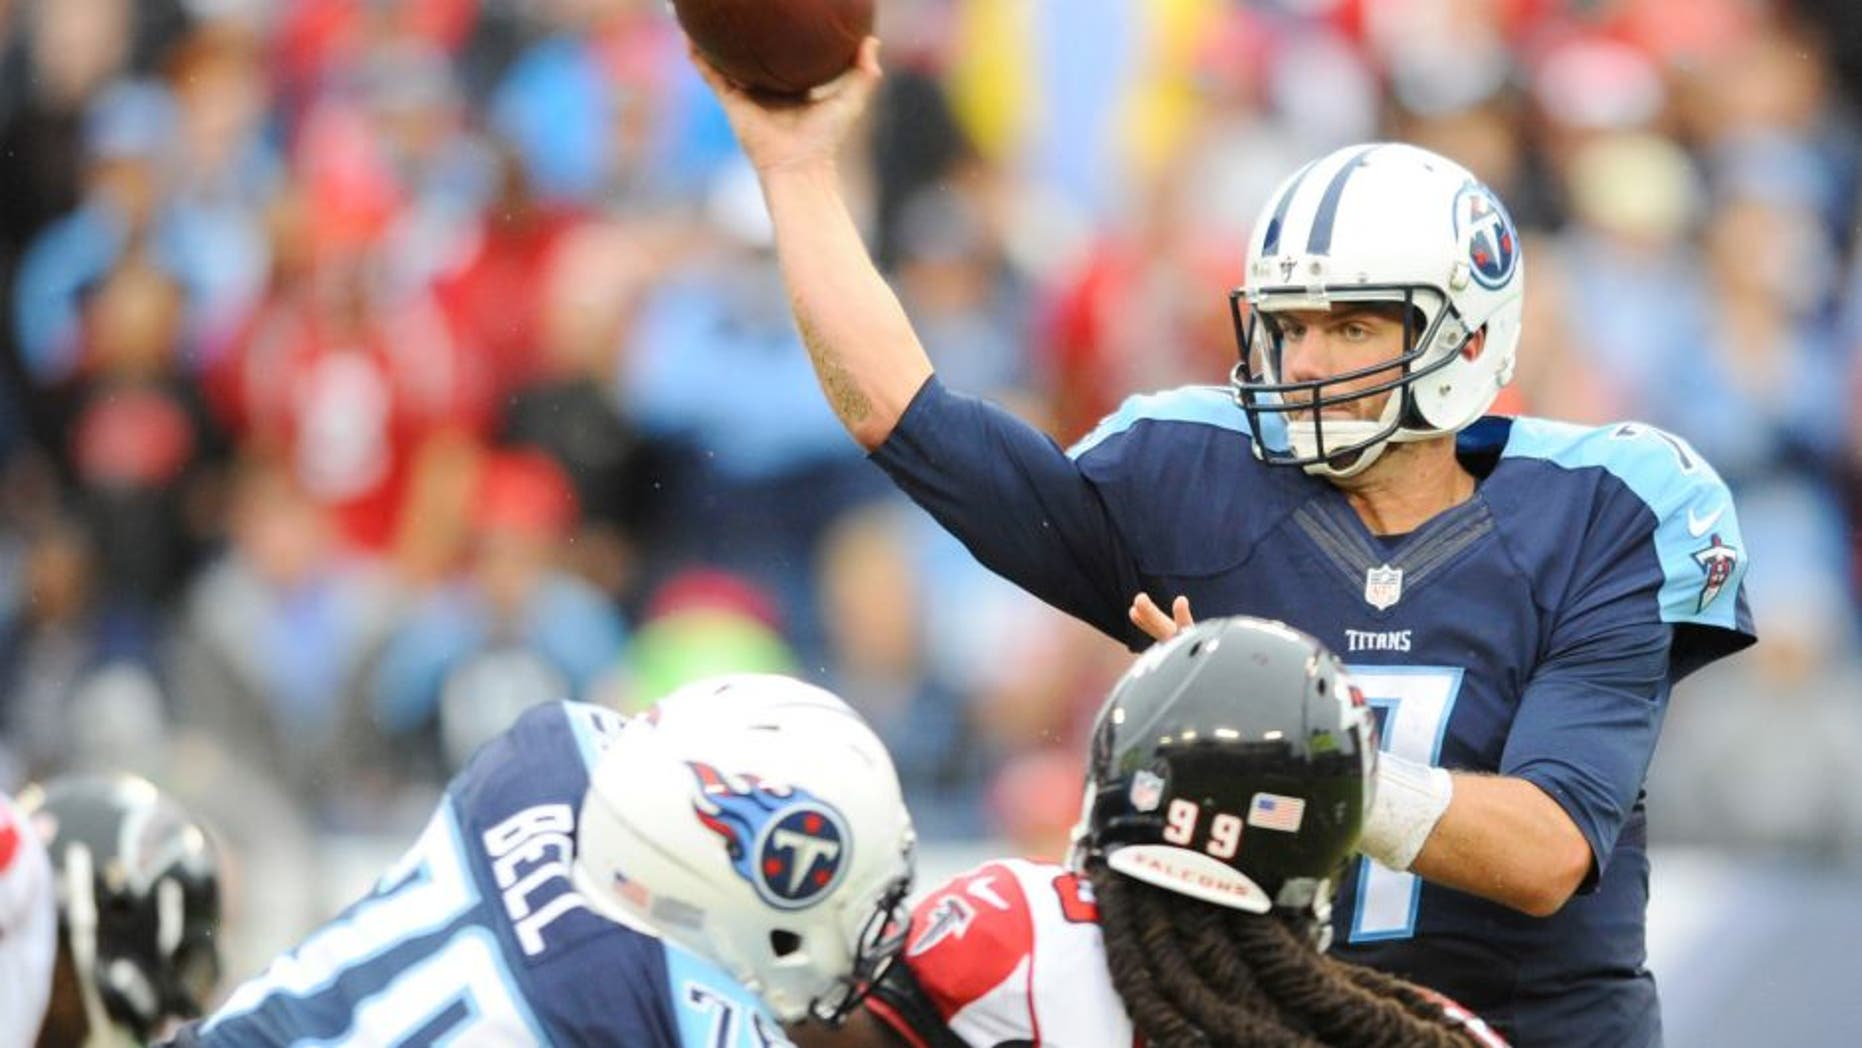 Oct 25, 2015; Nashville, TN, USA; Tennessee Titans quarterback Zach Mettenberger (7) passes the ball during the second half against the Atlanta Falcons at Nissan Stadium. The Falcons won 10-7. Mandatory Credit: Christopher Hanewinckel-USA TODAY Sports